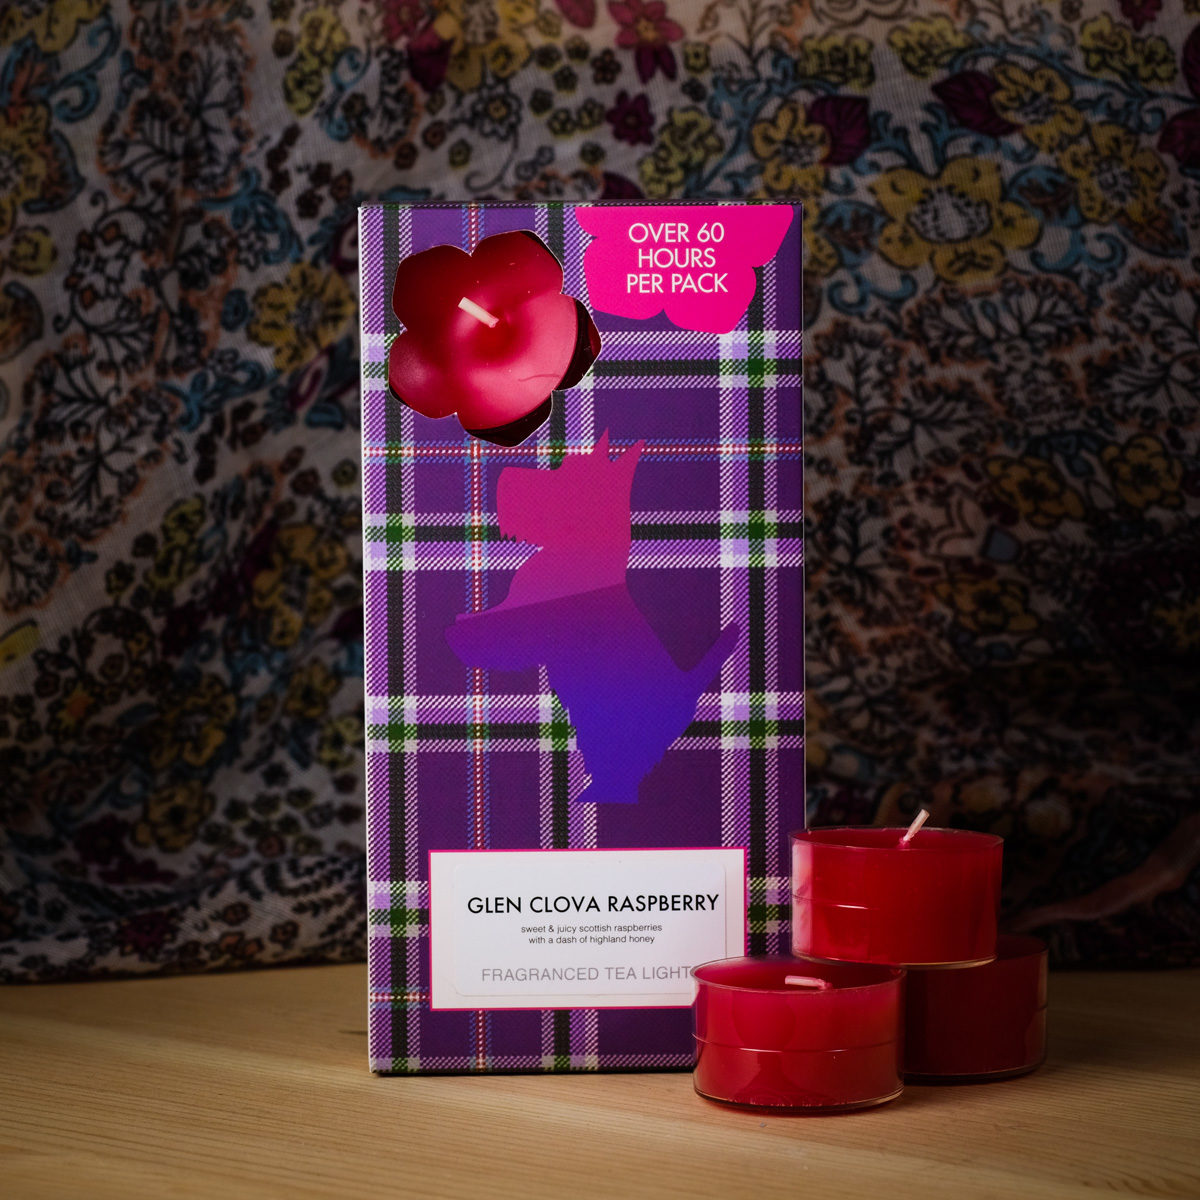 Glen Clova Raspberry Tealights